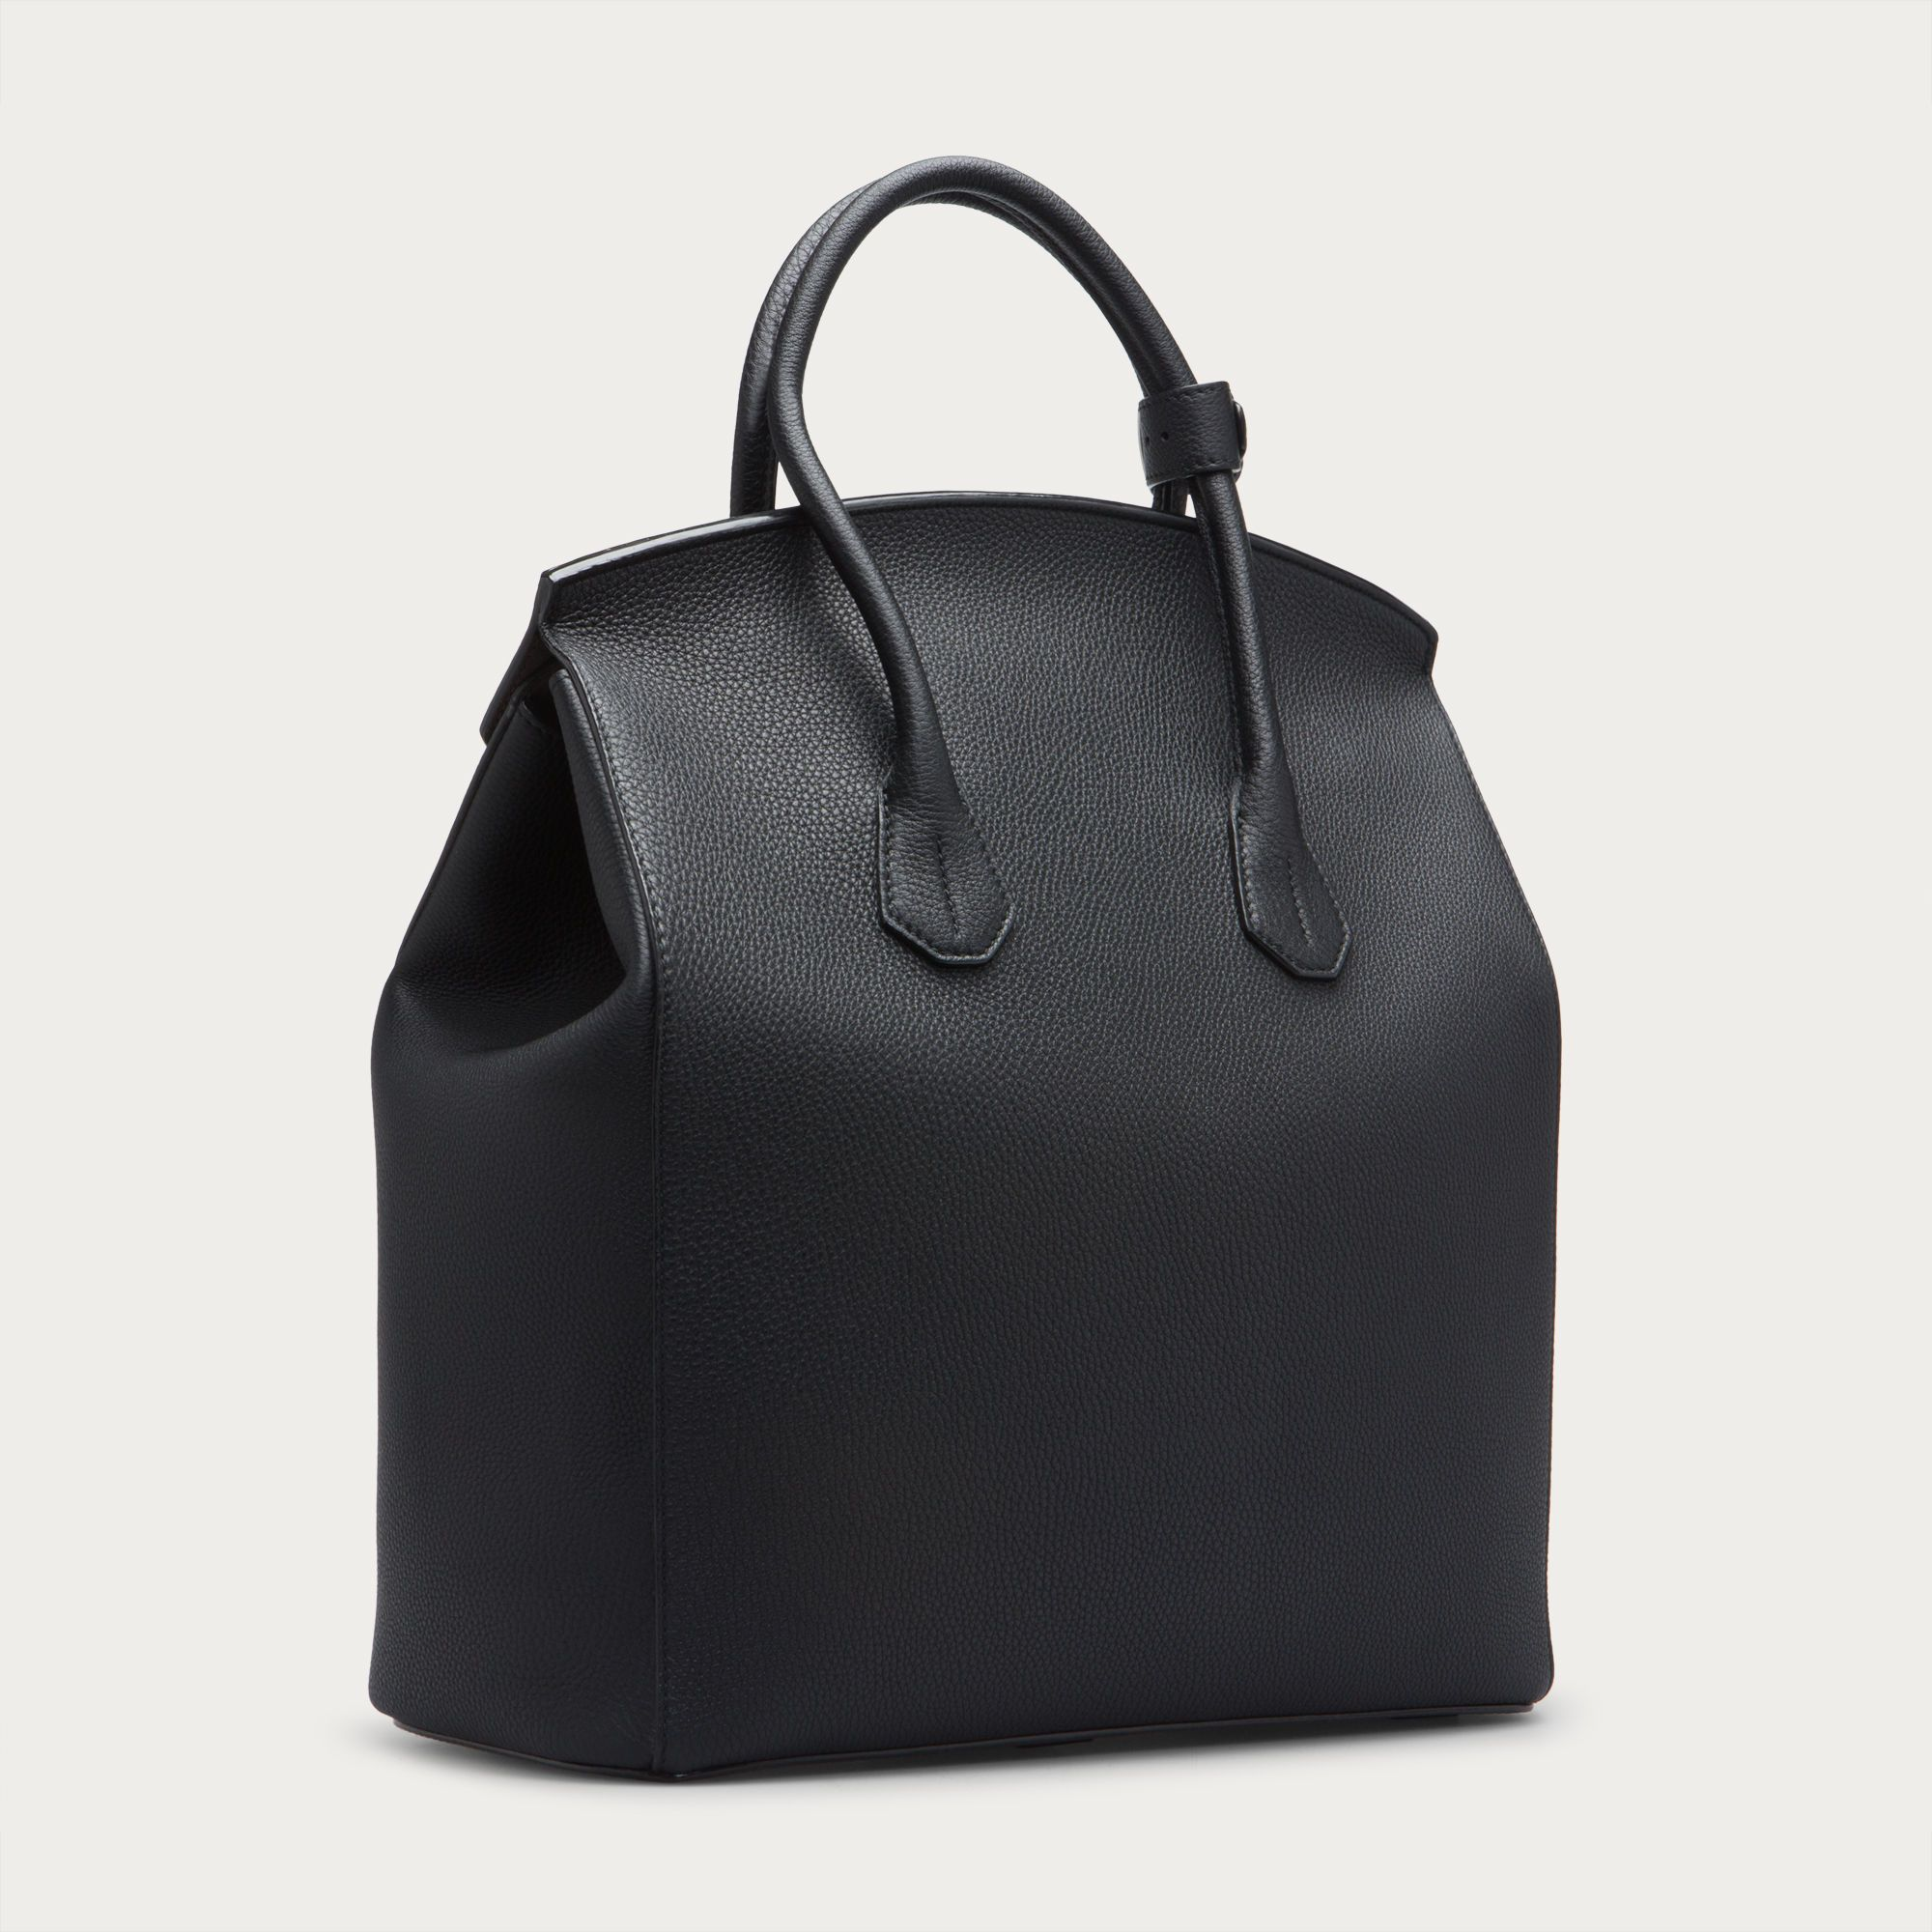 98736d807419 Bally SOMMET - BLACK CALF Totes | My Kind Of Style in 2019 | Black ...